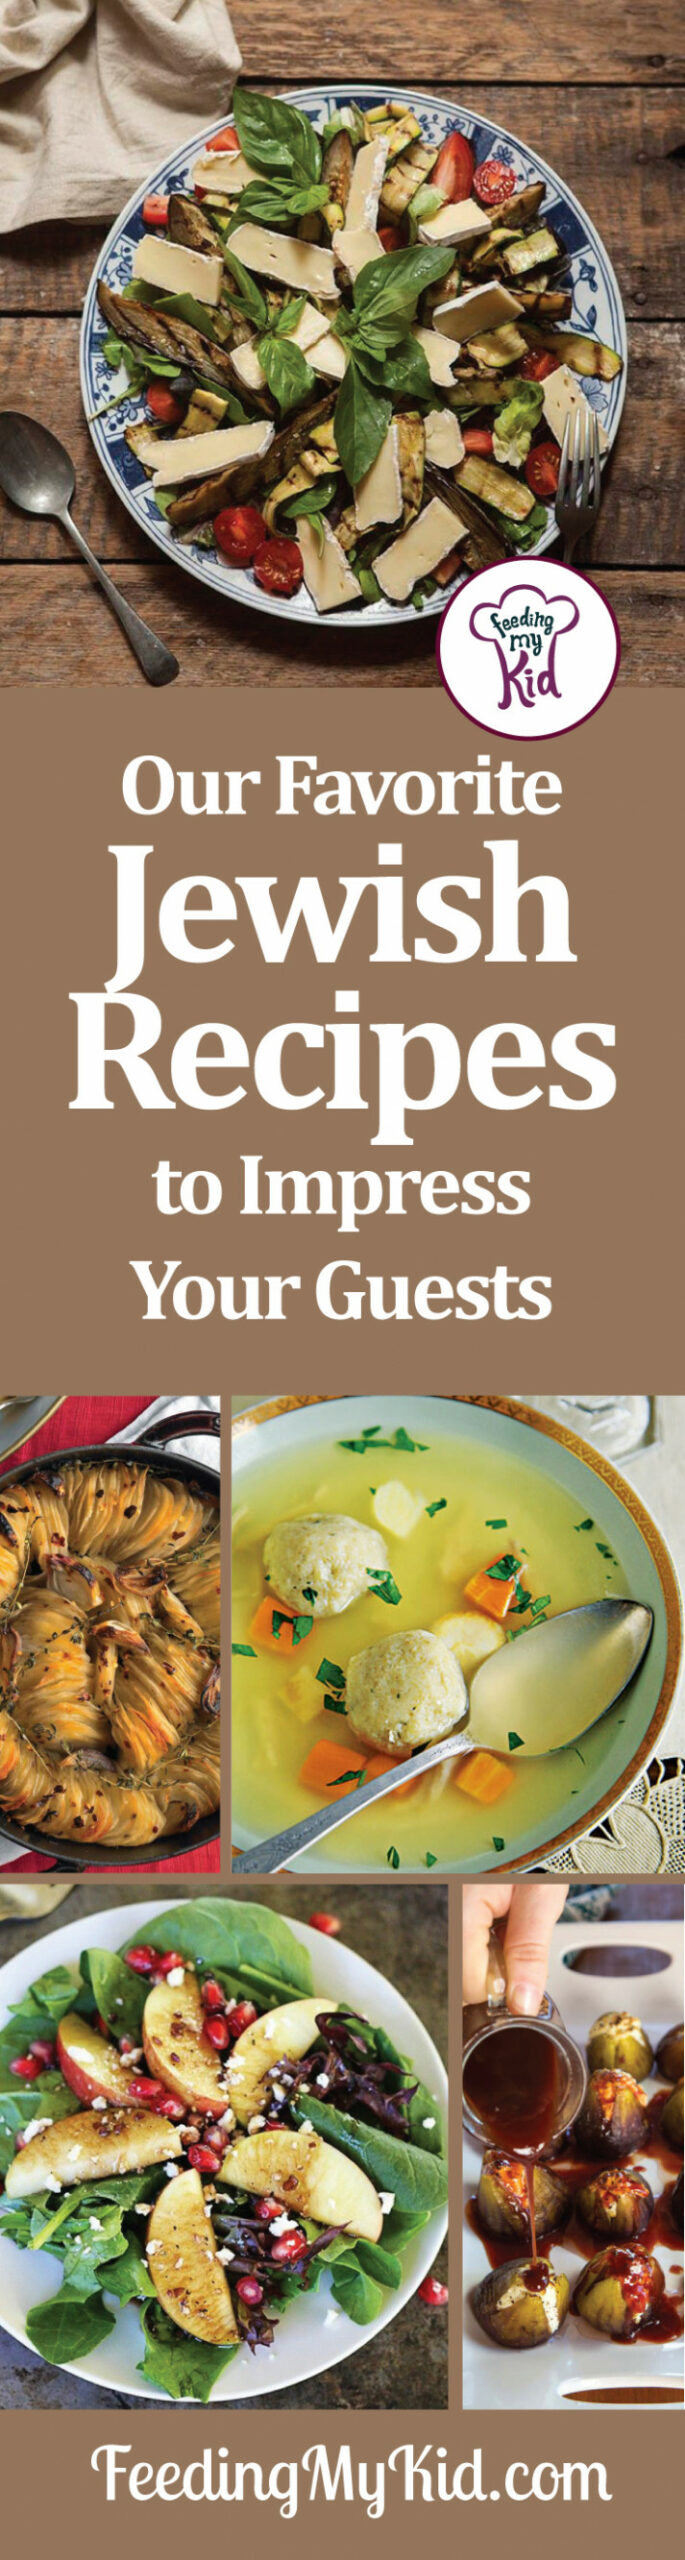 Jewish Recipes: Impress Your Guests with These Great Recipes - recipes guests dinner